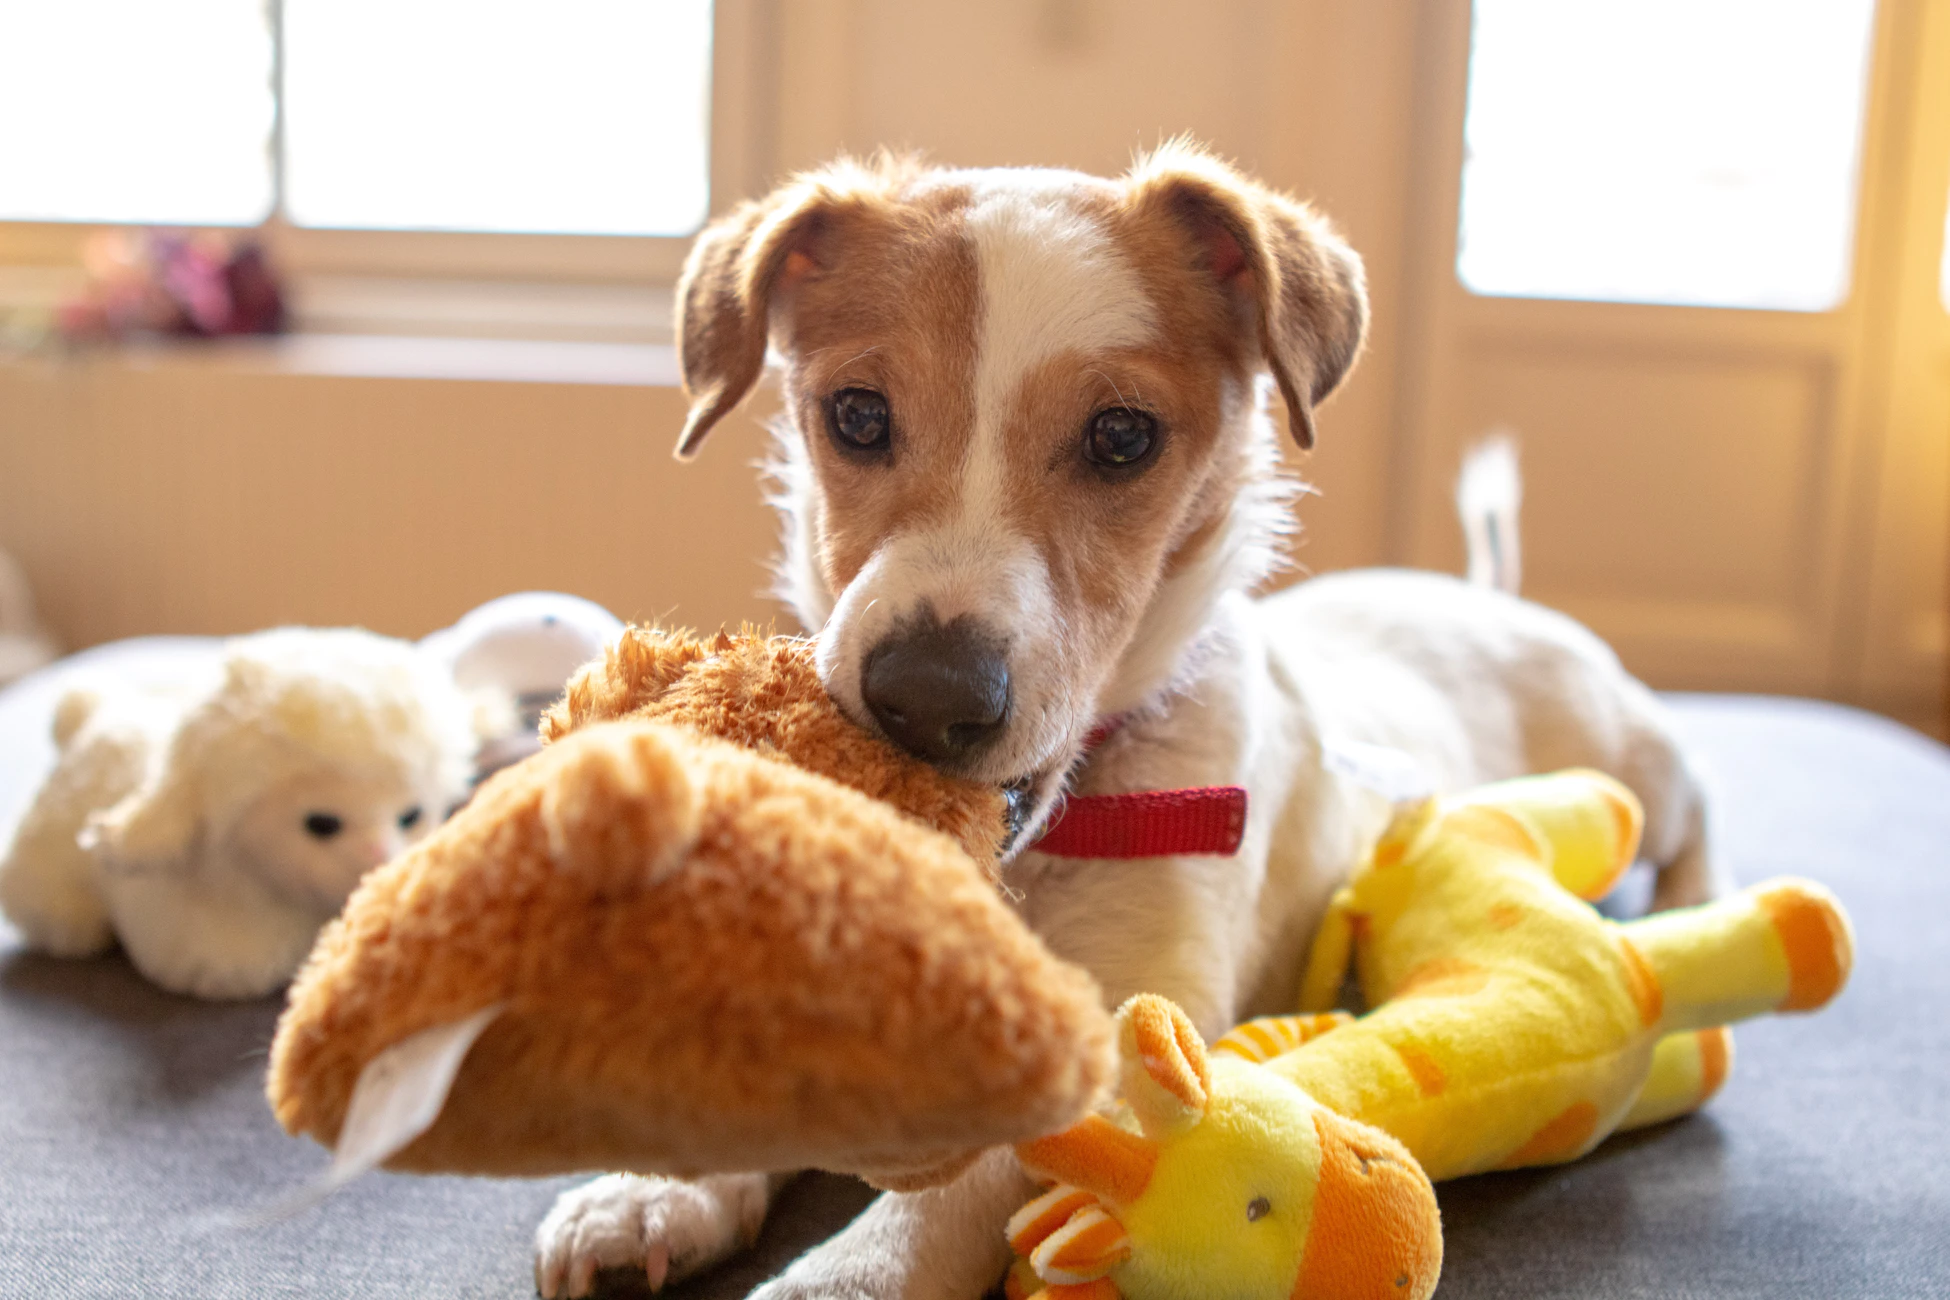 Tips and tricks to keep your dog entertained while you are away